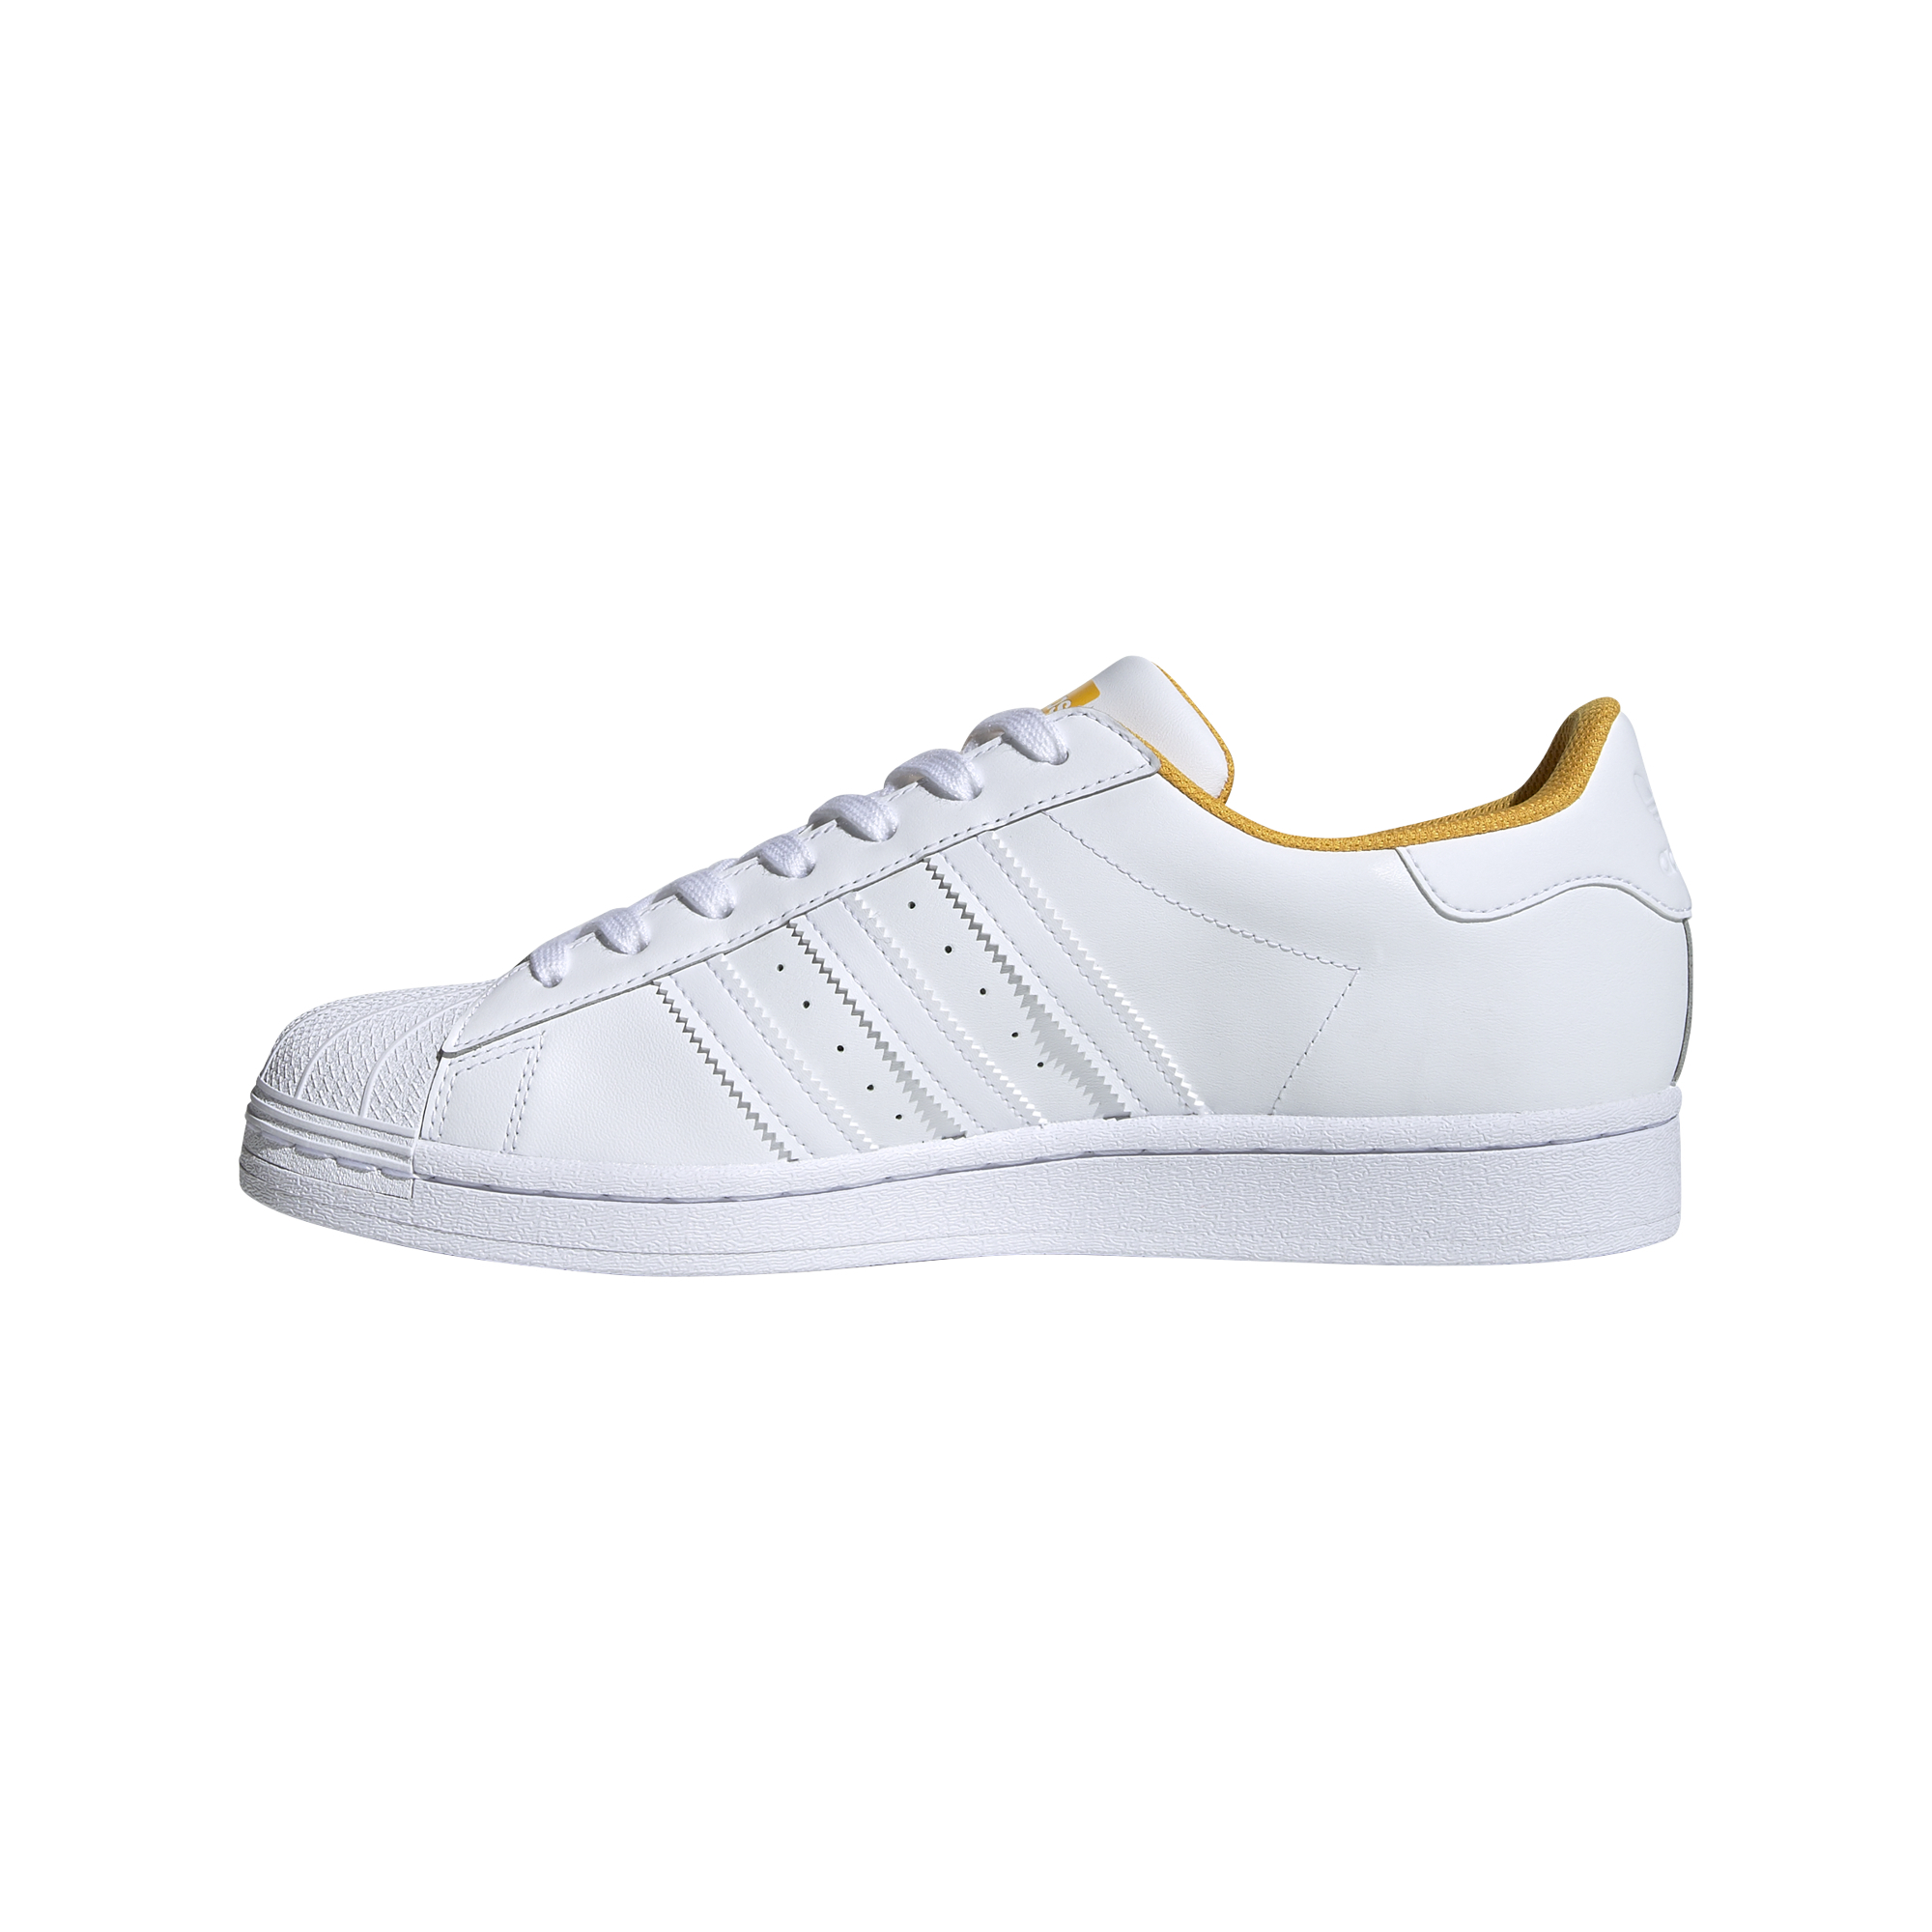 adidas Superstar Ftw White/ Ftw White/ Active Gold EUR 42